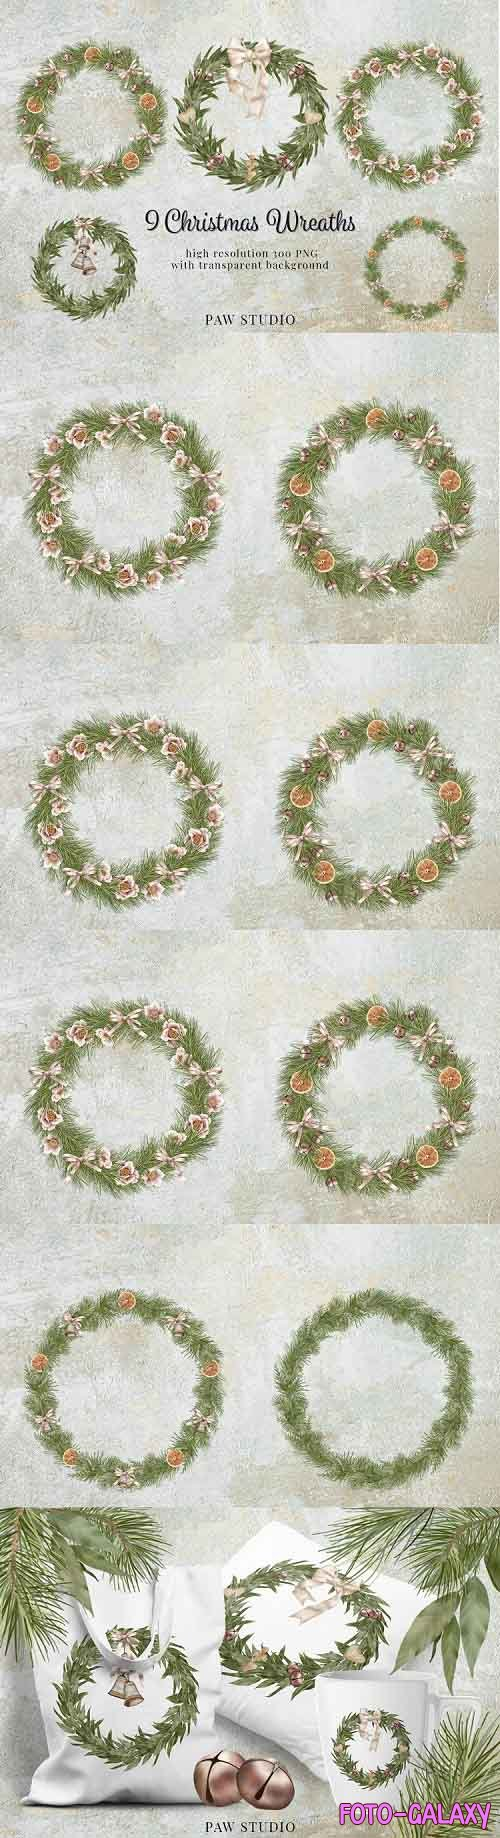 Christmas Wreath Clipart Winter Greenery Holidays New Year - 901101